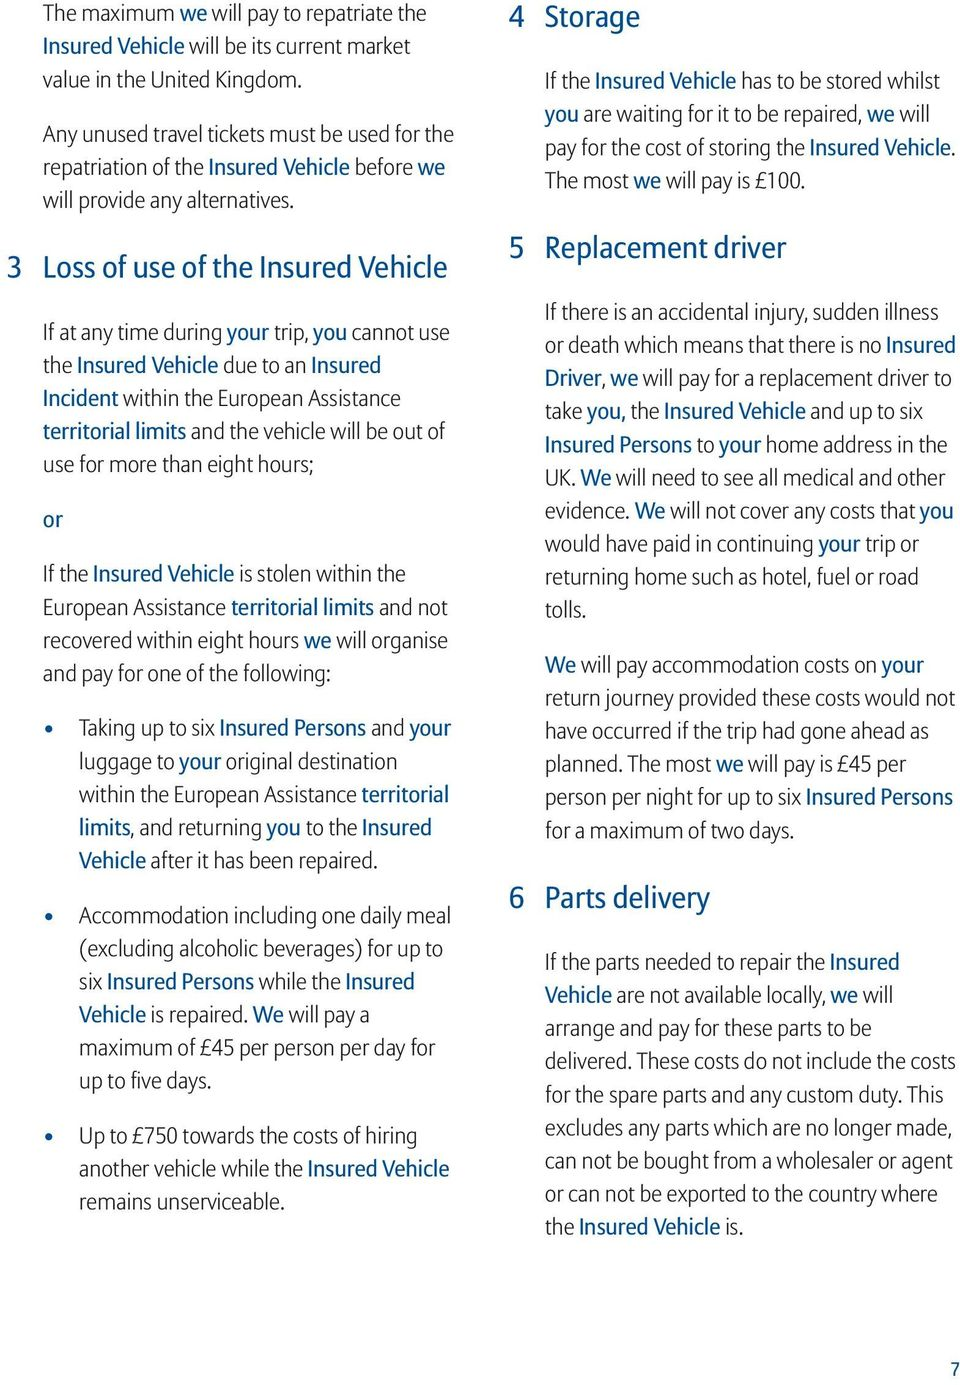 3 Loss of use of the Insured Vehicle If at any time during your trip, you cannot use the Insured Vehicle due to an Insured Incident within the European Assistance territorial limits and the vehicle